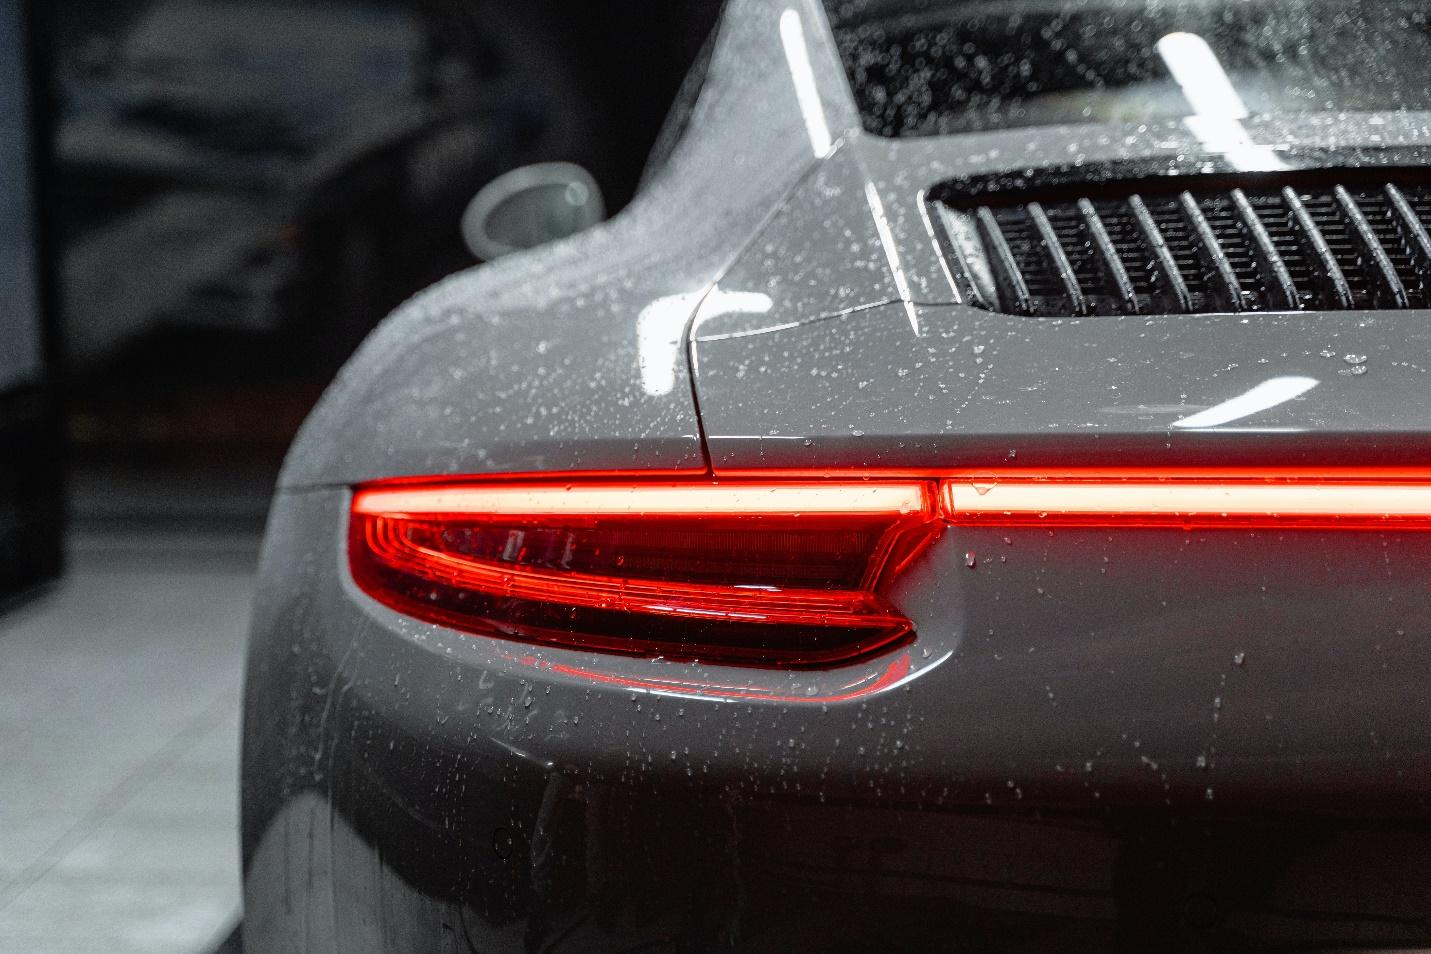 A Porsche with water droplets and its brake lights on. DIY car wash.